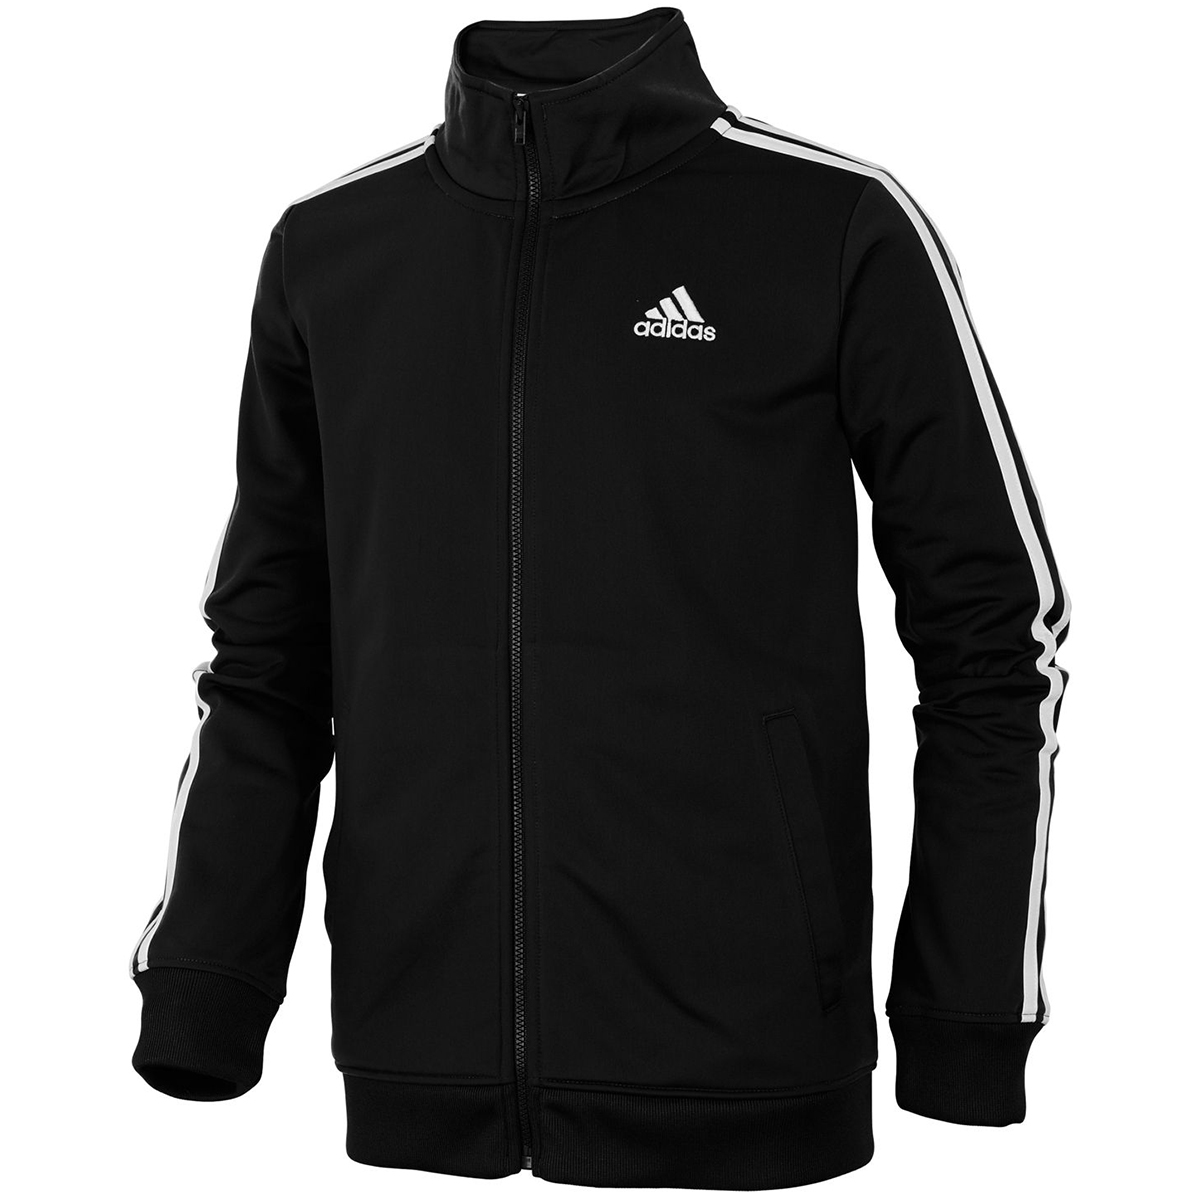 Adidas Little Boys' Iconic Tricot Track Jacket - Black, 4